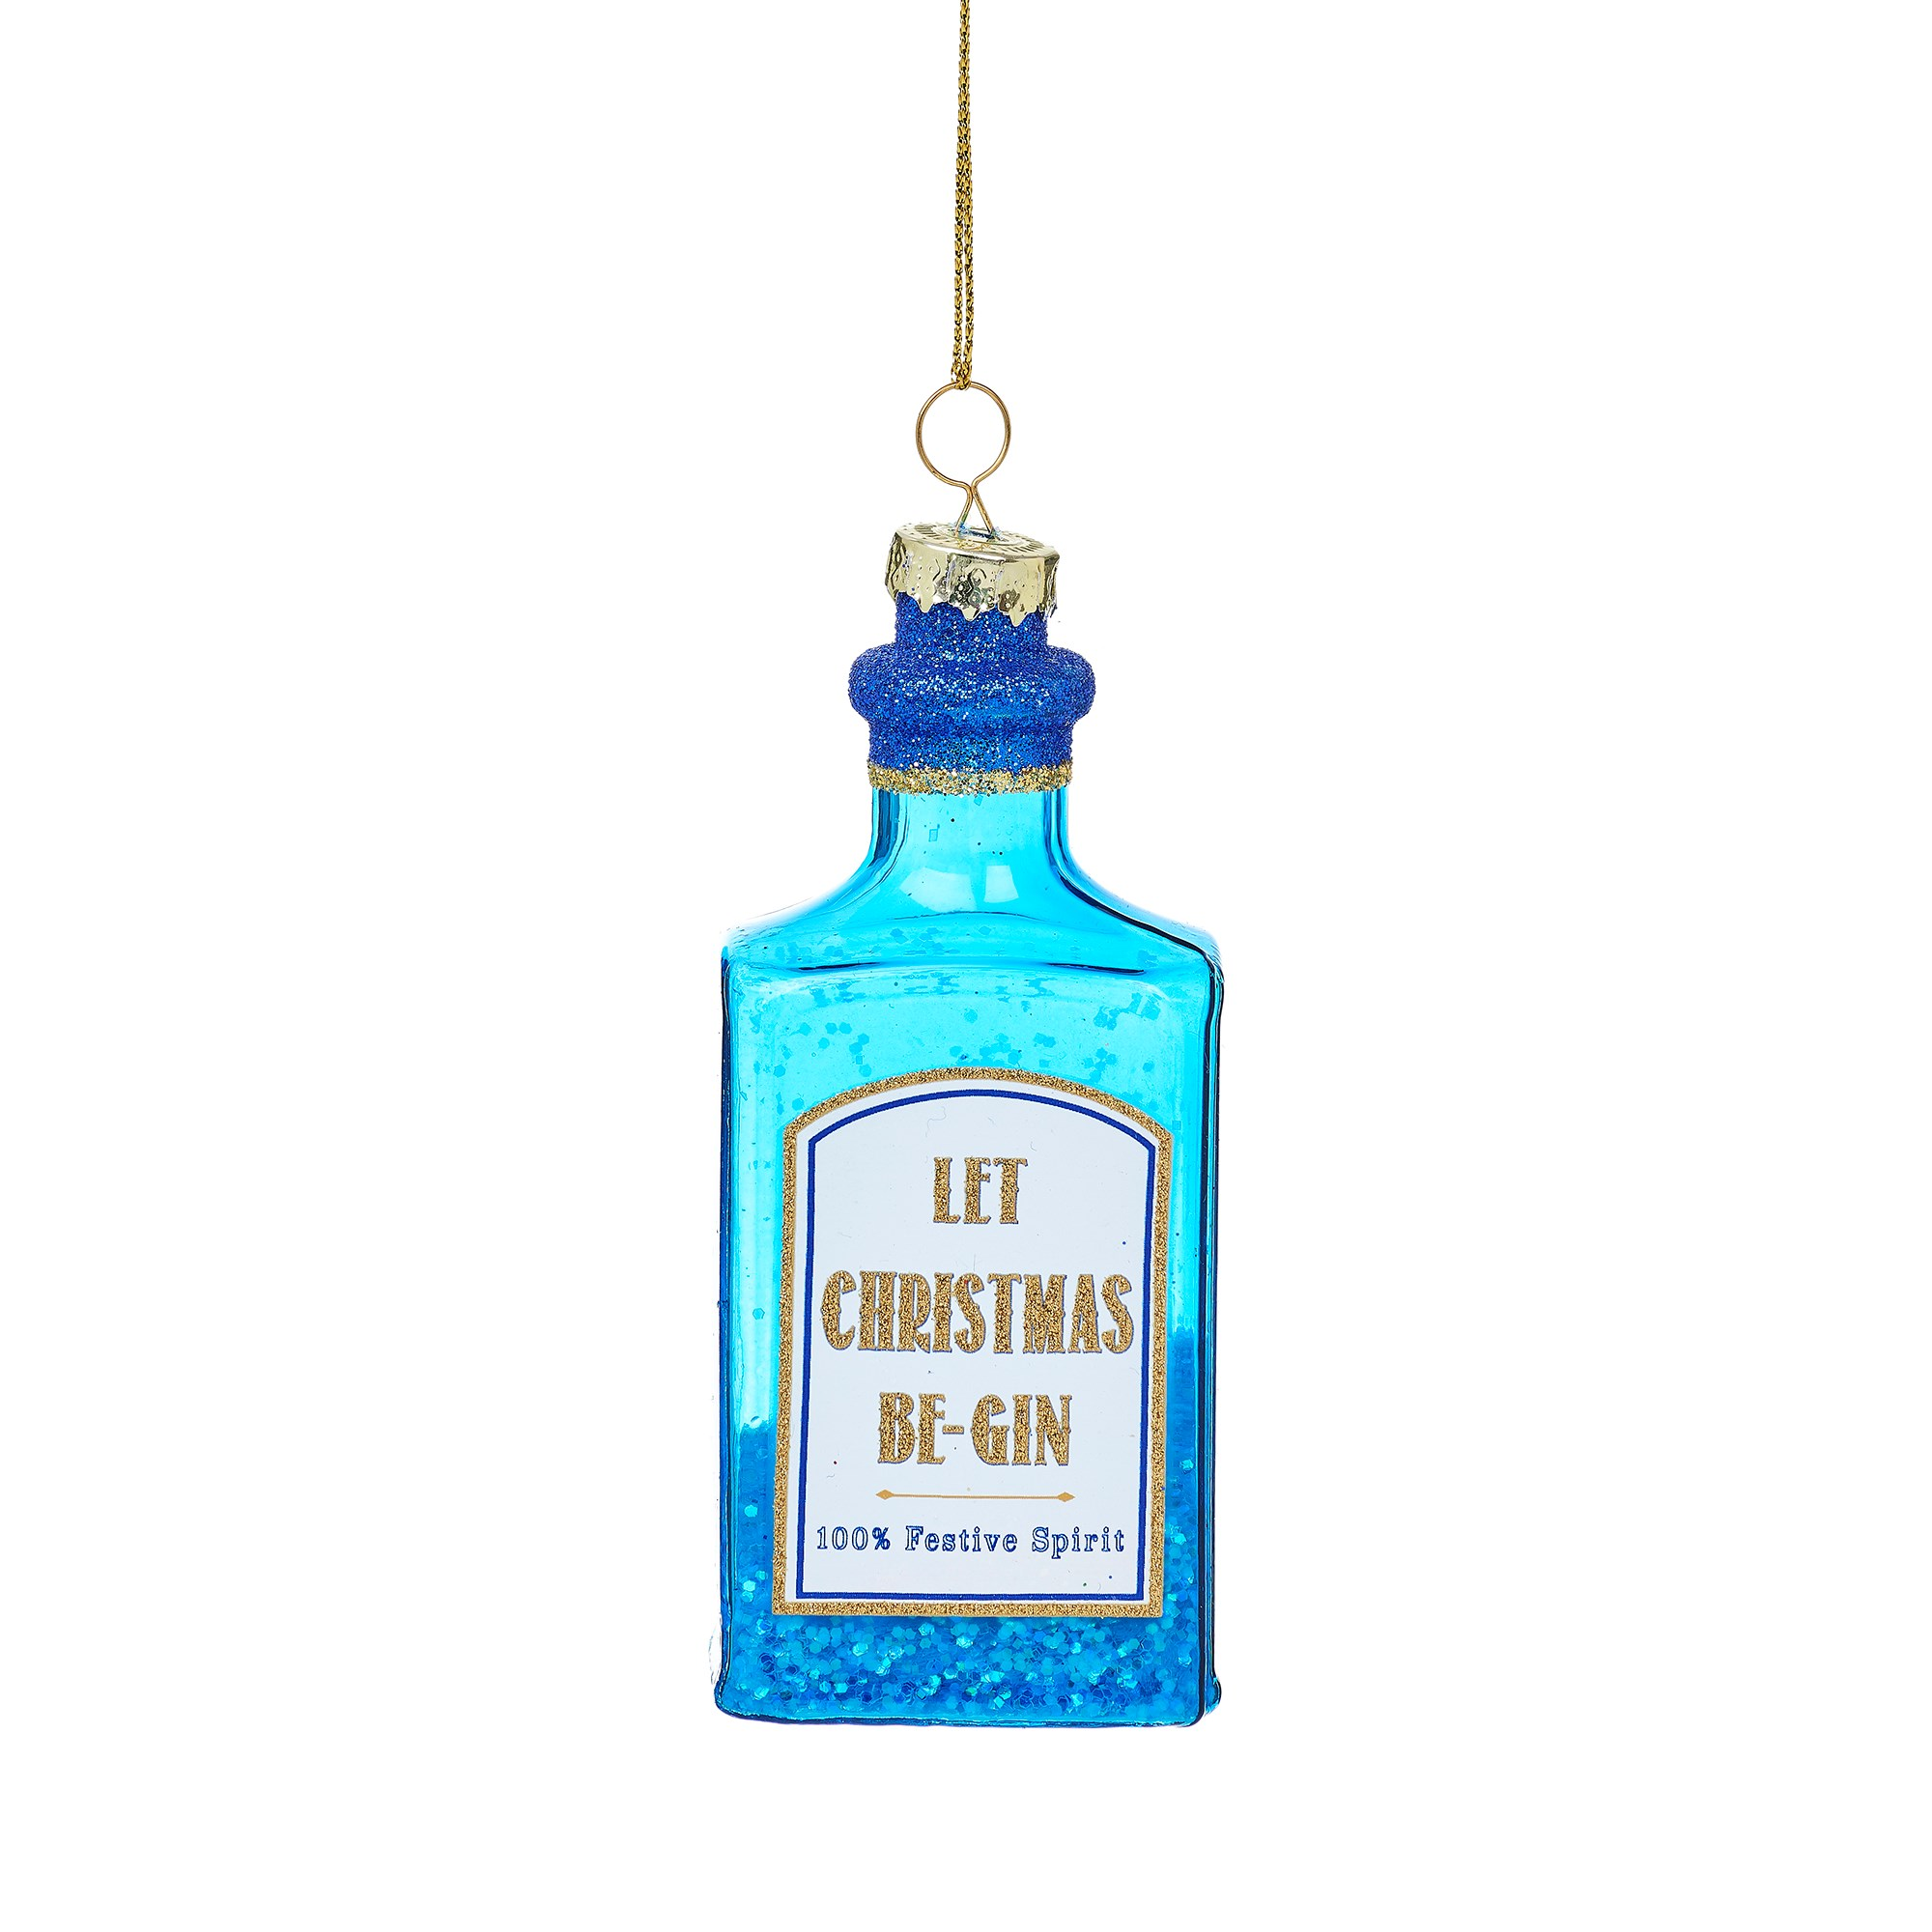 Let Christmas Be-Gin Blue